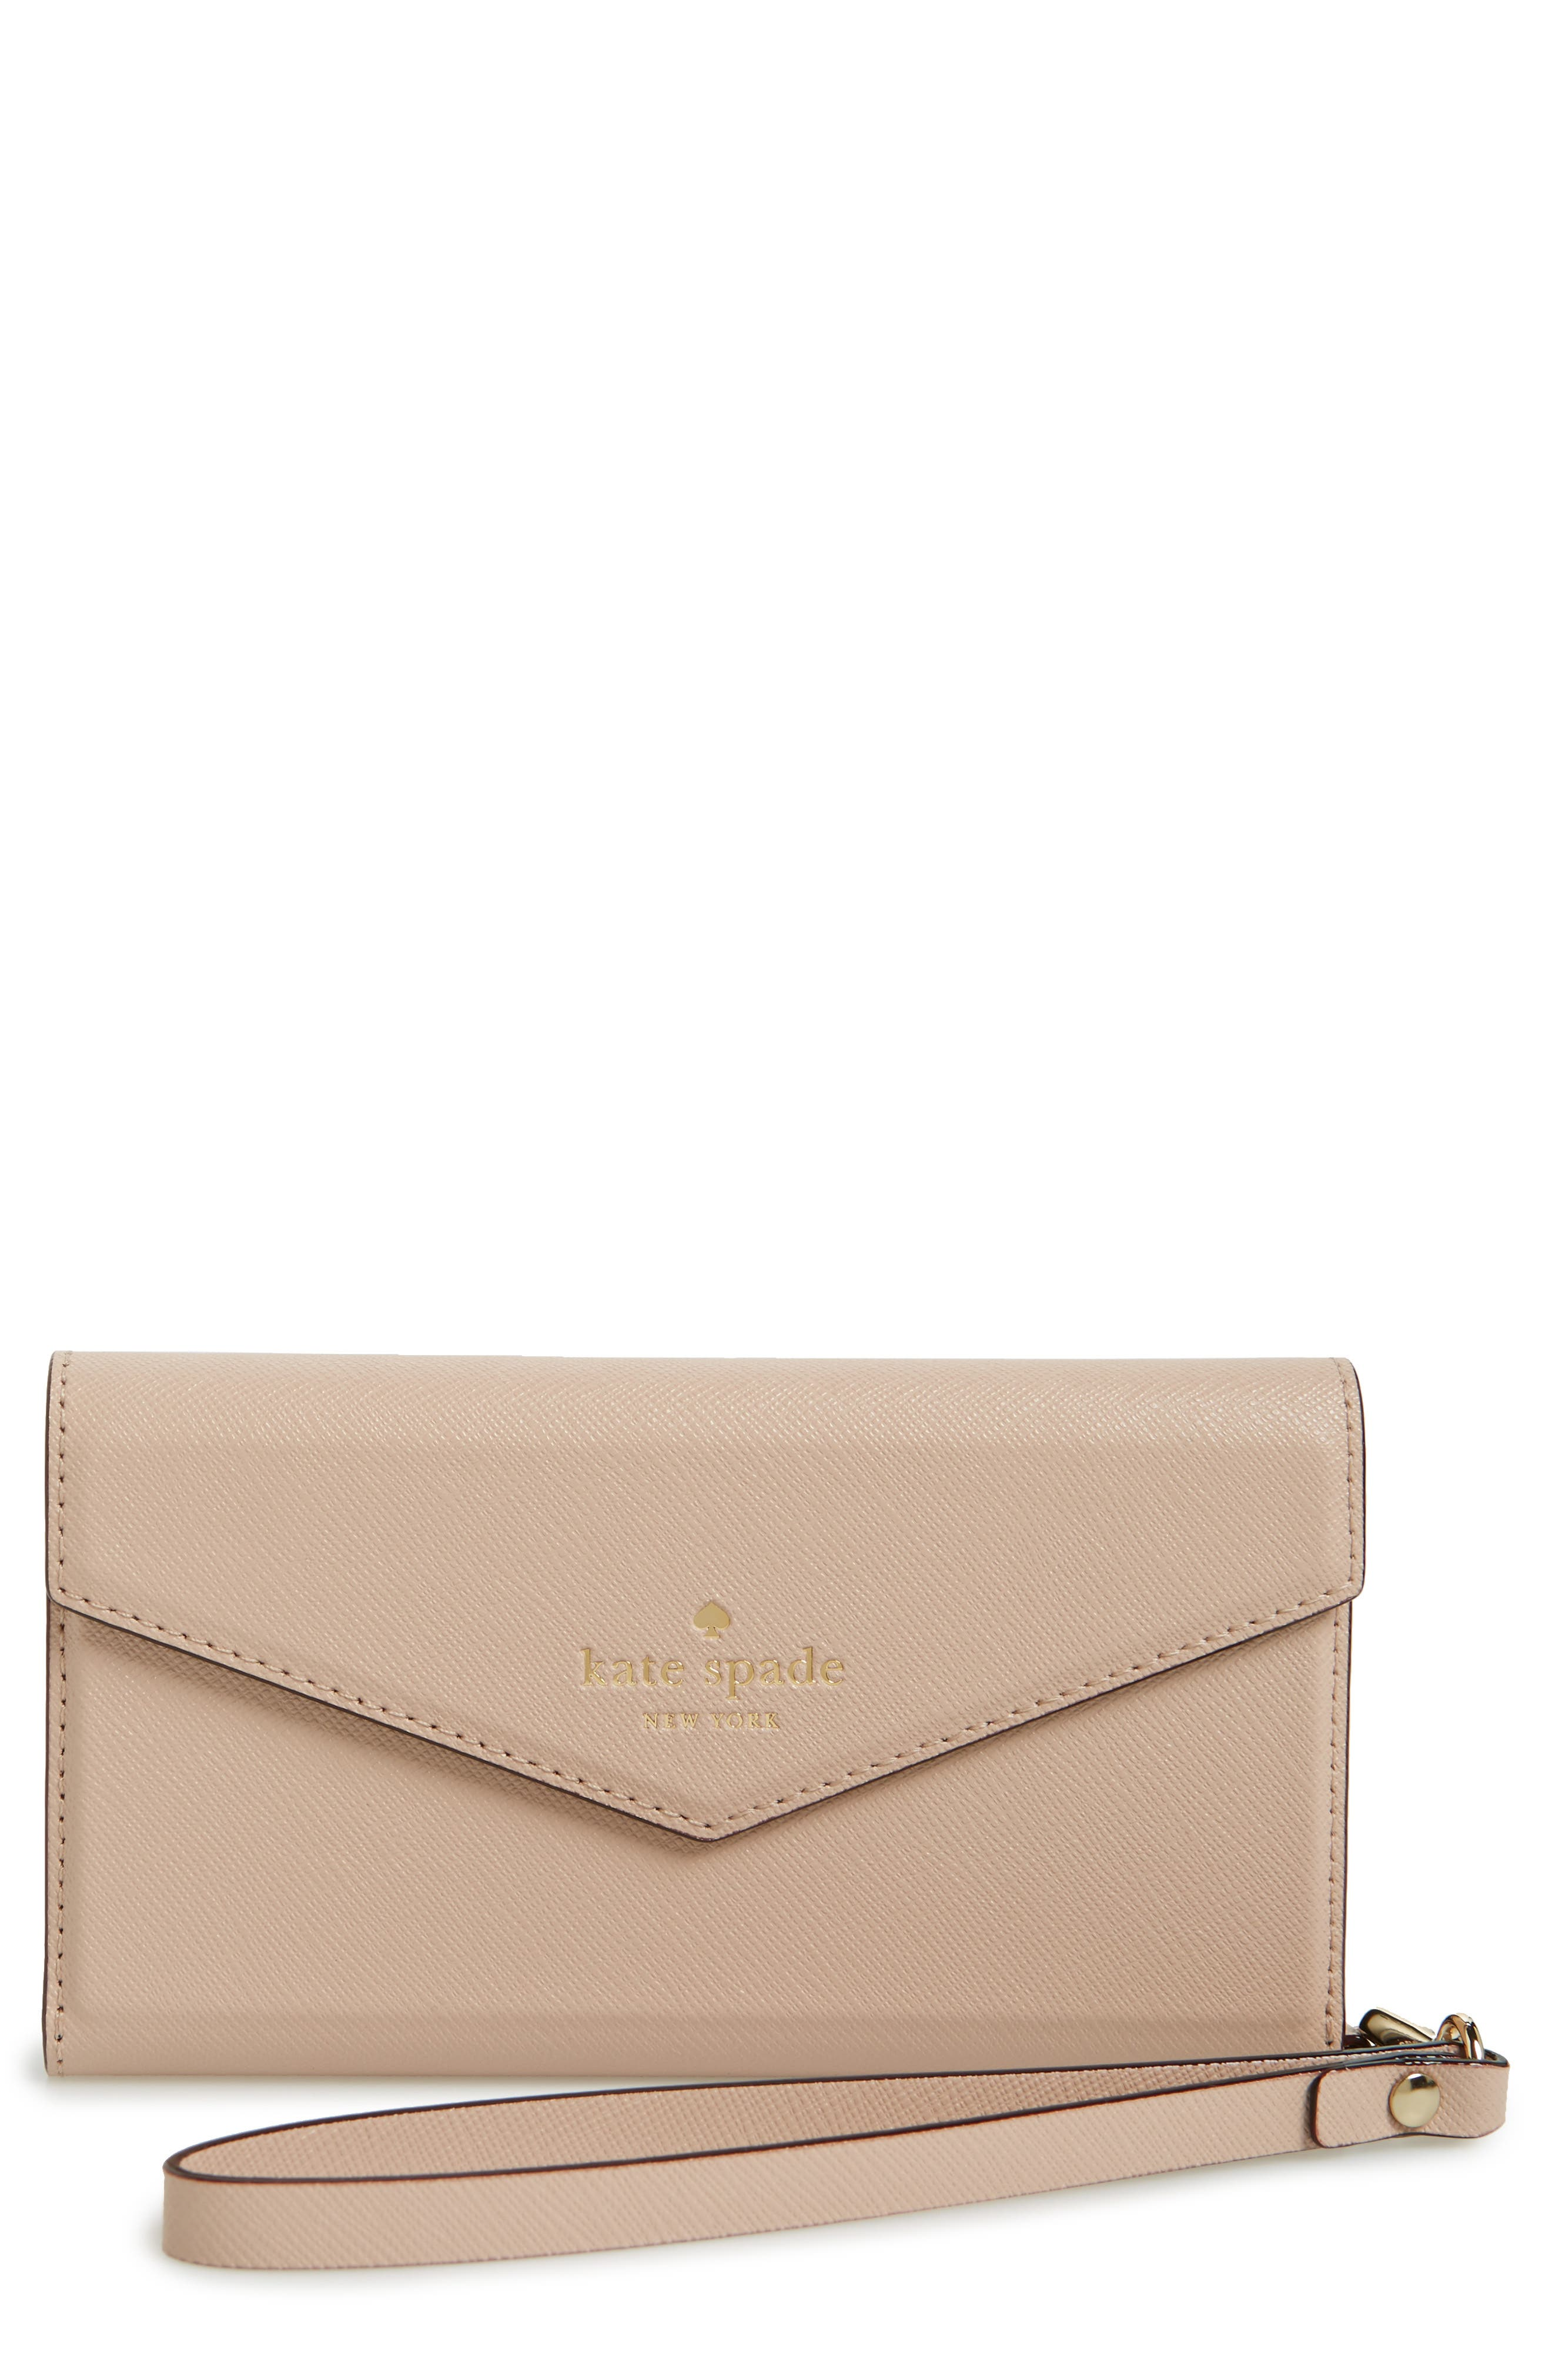 kate spade new york iPhone 7 leather wristlet